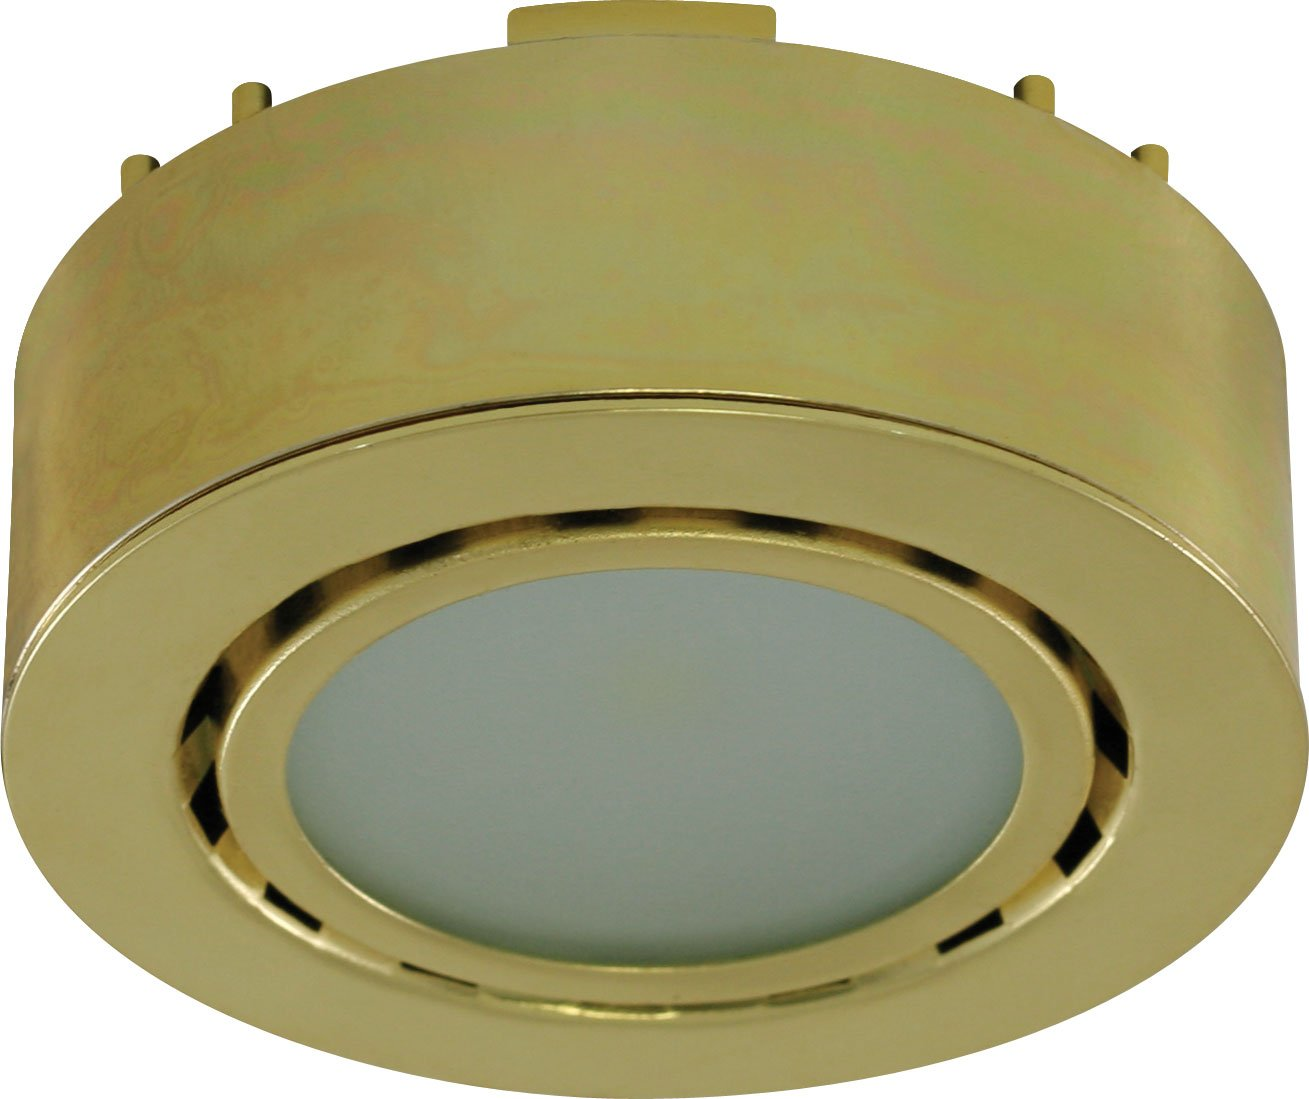 Liteline ucp led1 pb led puck light 12v polished brass under liteline ucp led1 pb led puck light 12v polished brass under counter fixtures amazon mozeypictures Image collections